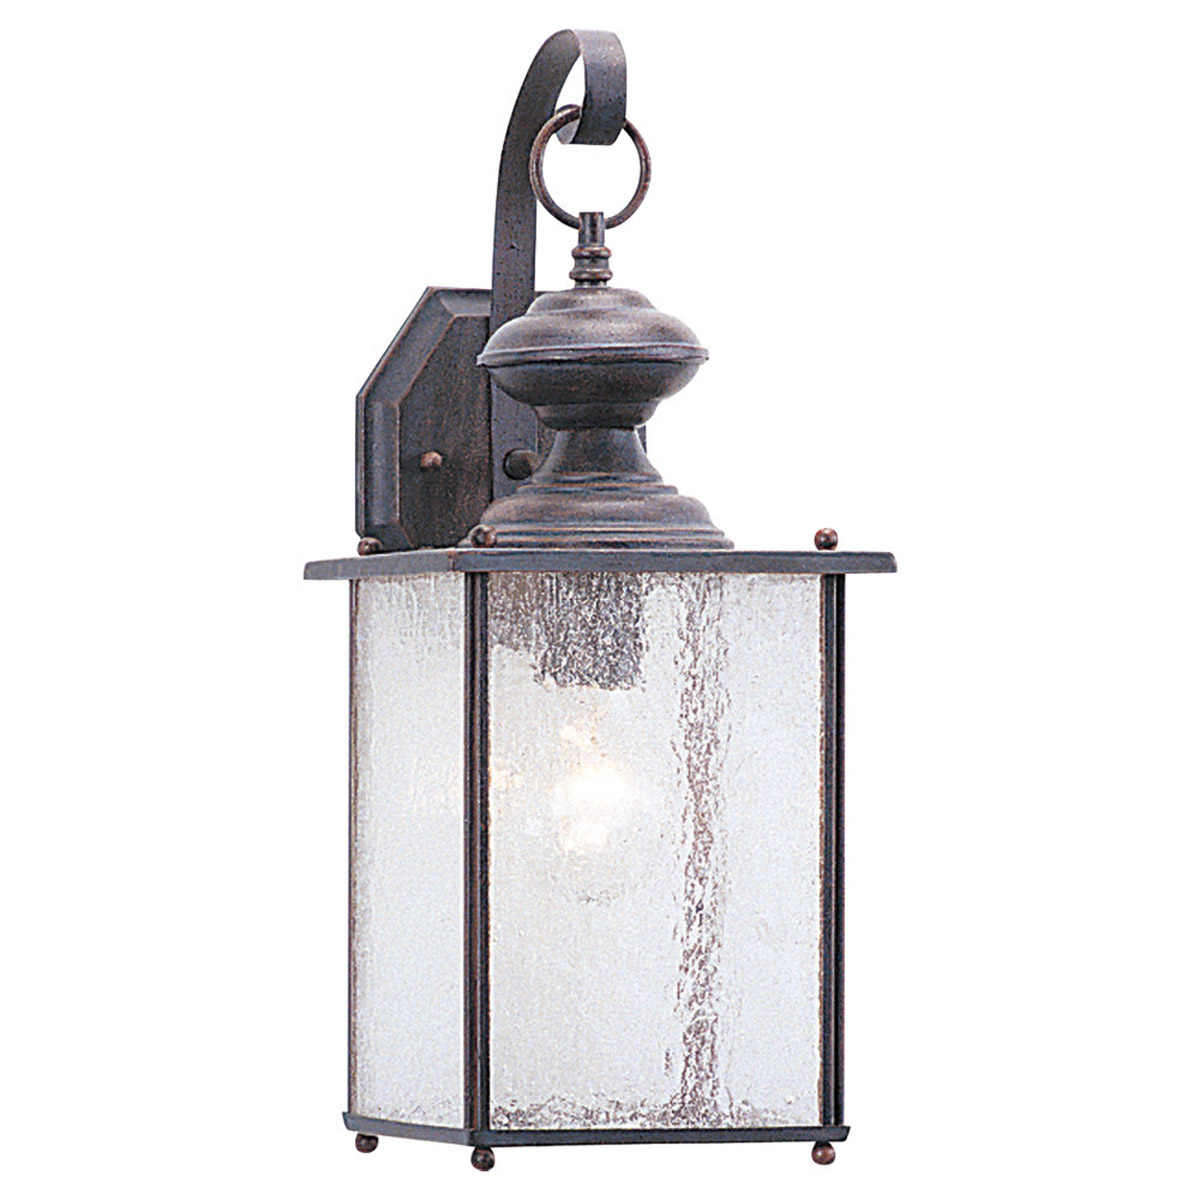 Sea Gull Lighting Jamestowne 1 Light Outdoor Wall Lantern in Textured Rust Patina 8882-08 photo